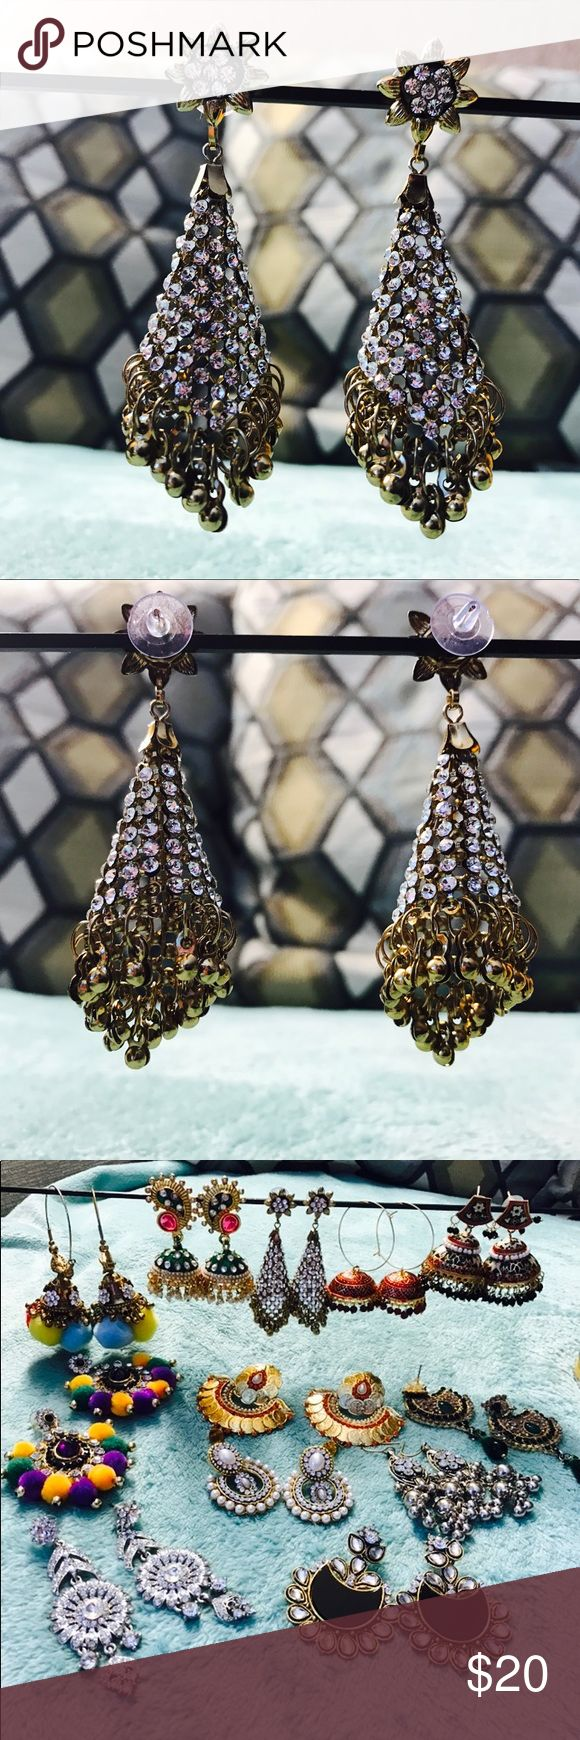 Indian rhinestone and pearl earrings!💕❤️ Brand new!❤️💕❤️ I love my all jewelry pieces ❤️💕 I have hundreds of it! So I am selling this! It is perfect for party, wedding, prom❤️💕❤️ Boutique Jewelry Earrings